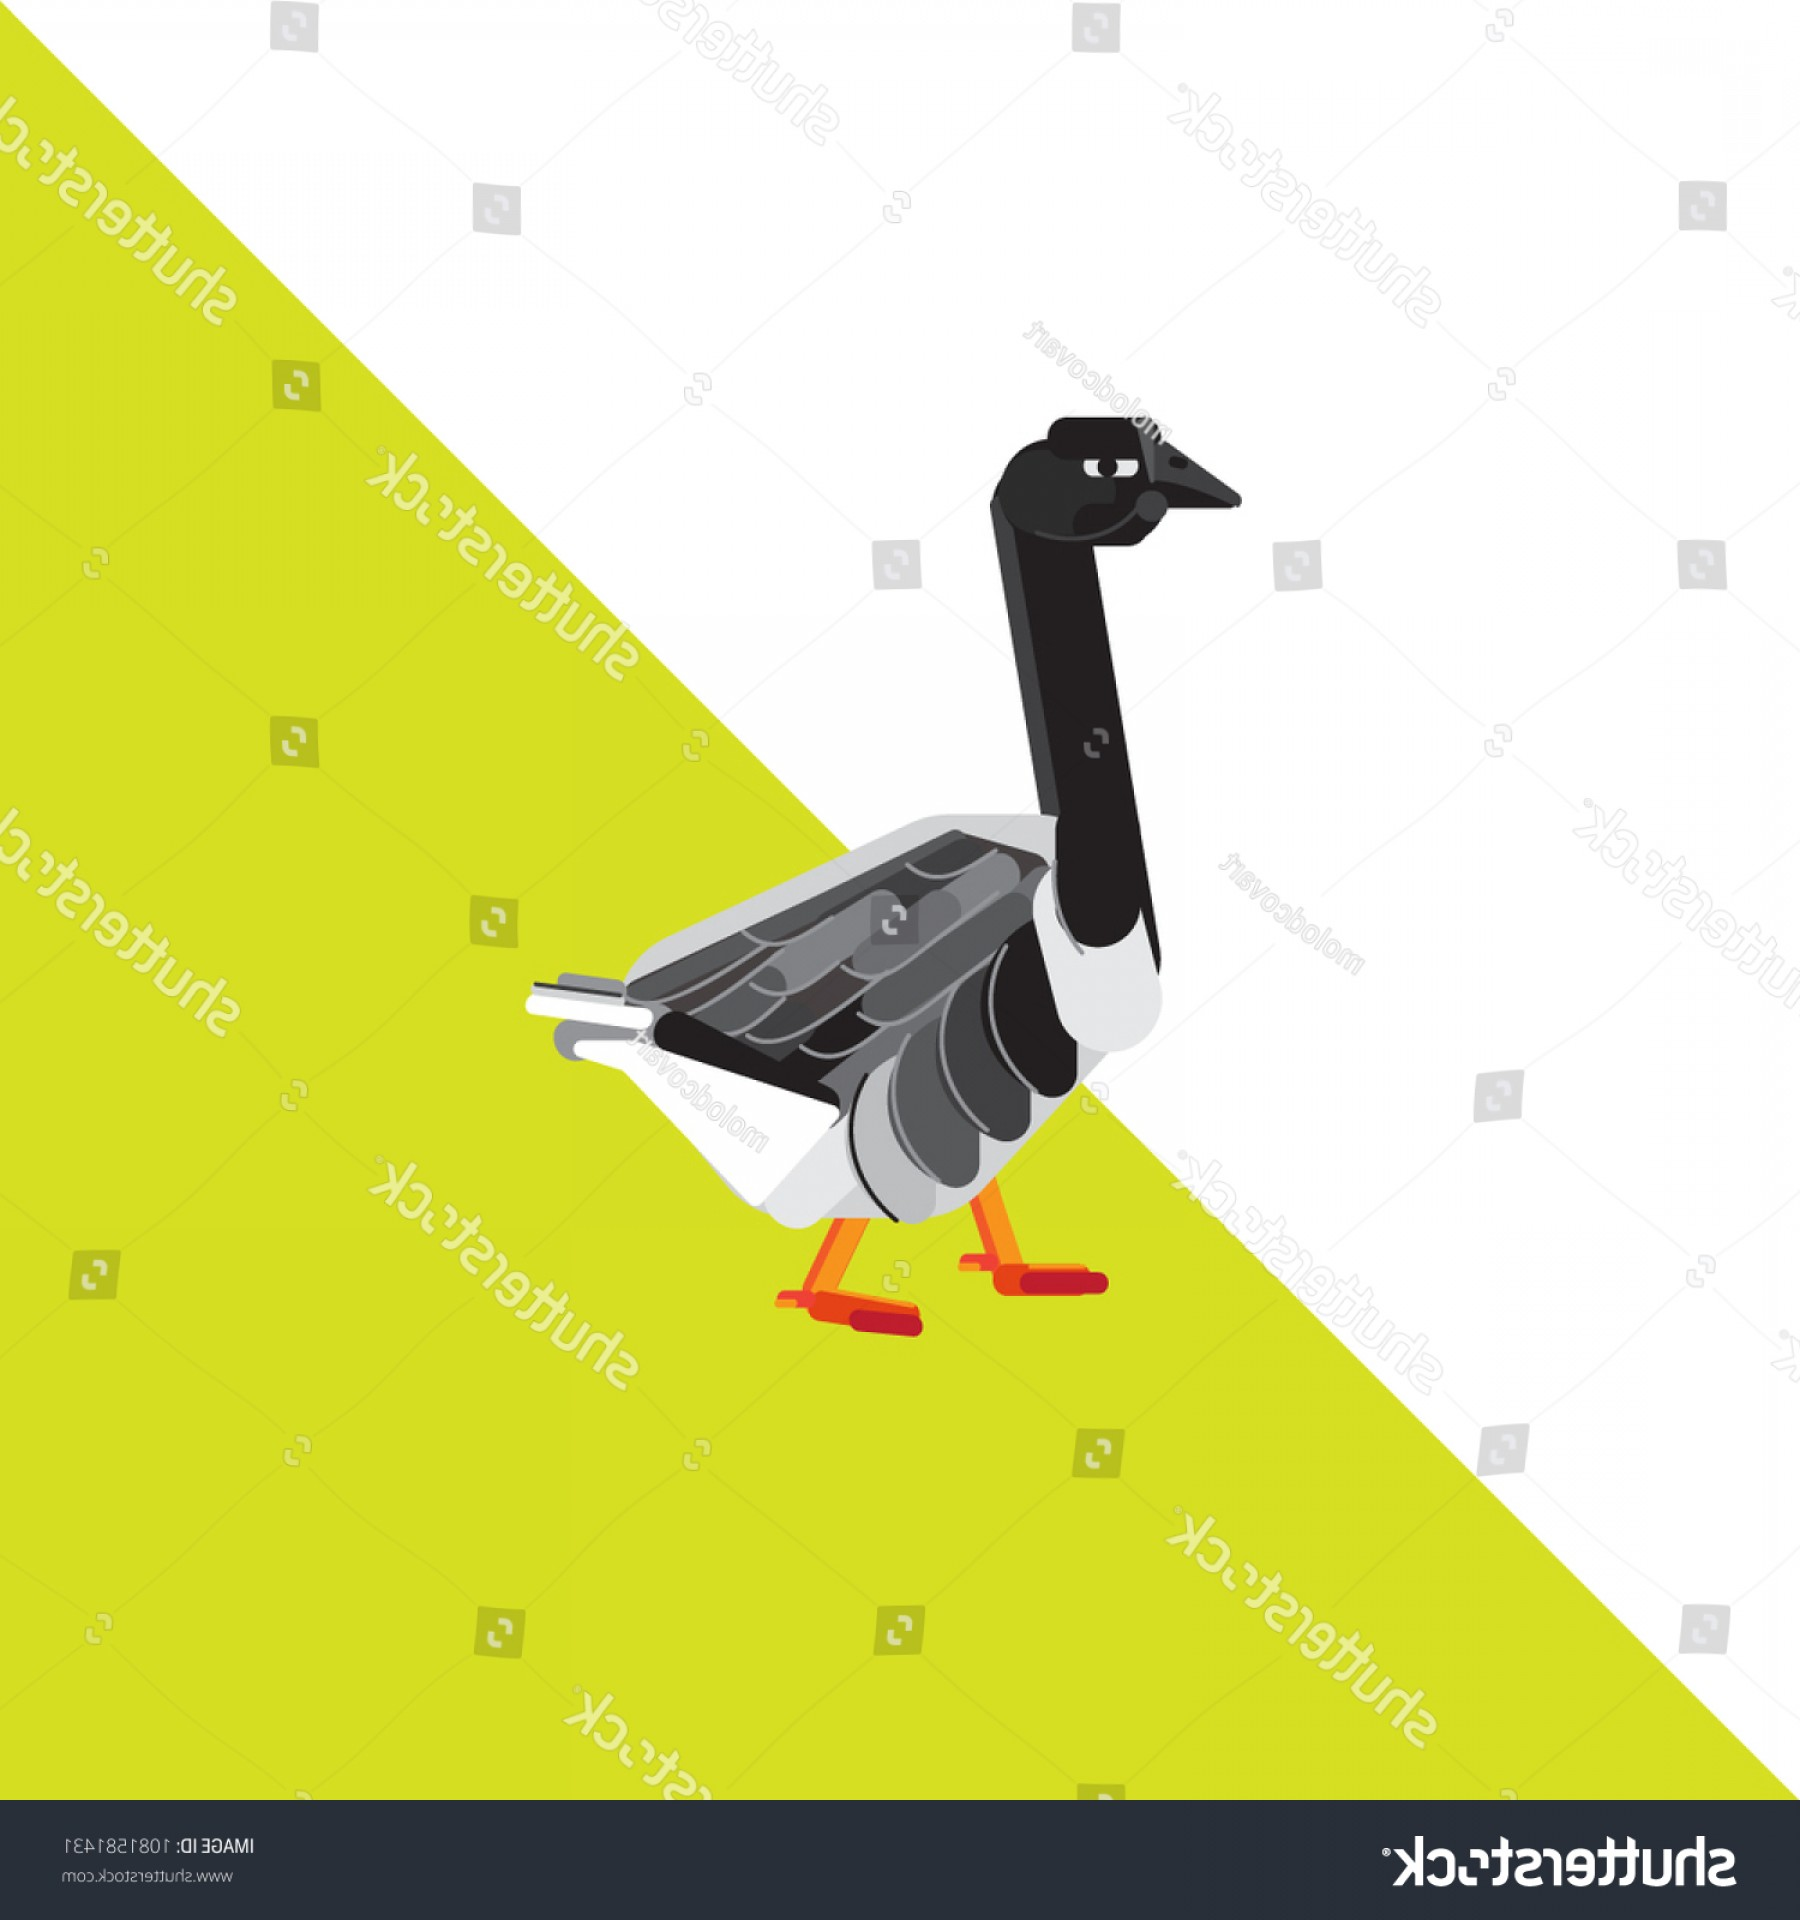 Poultry Vector Art: Goose Vector Illustration Poultry Gray